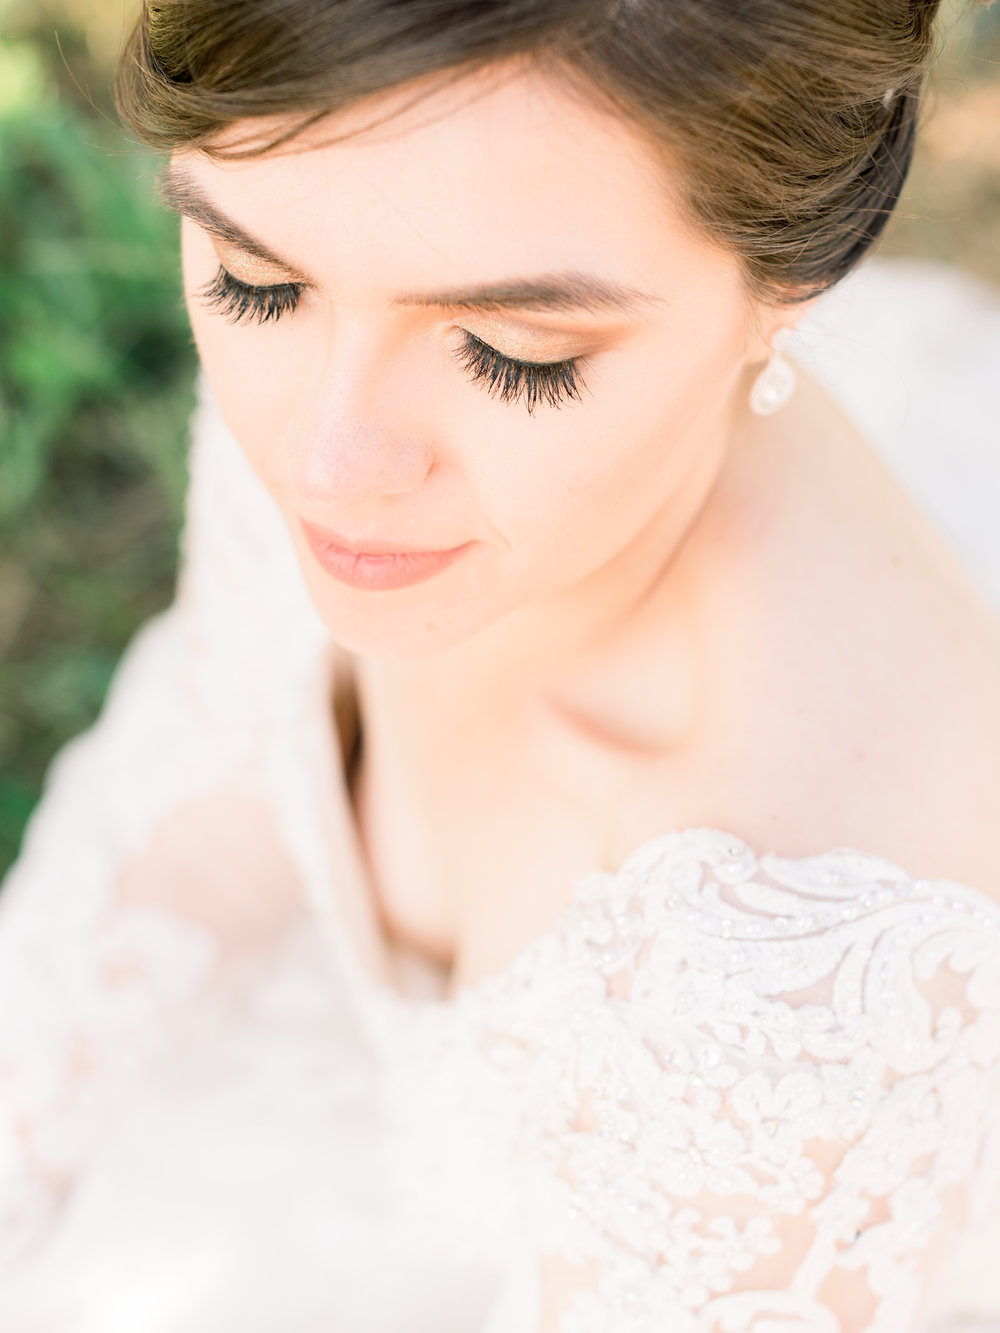 beauty-photo-of-the-bride's-makeup.jpg